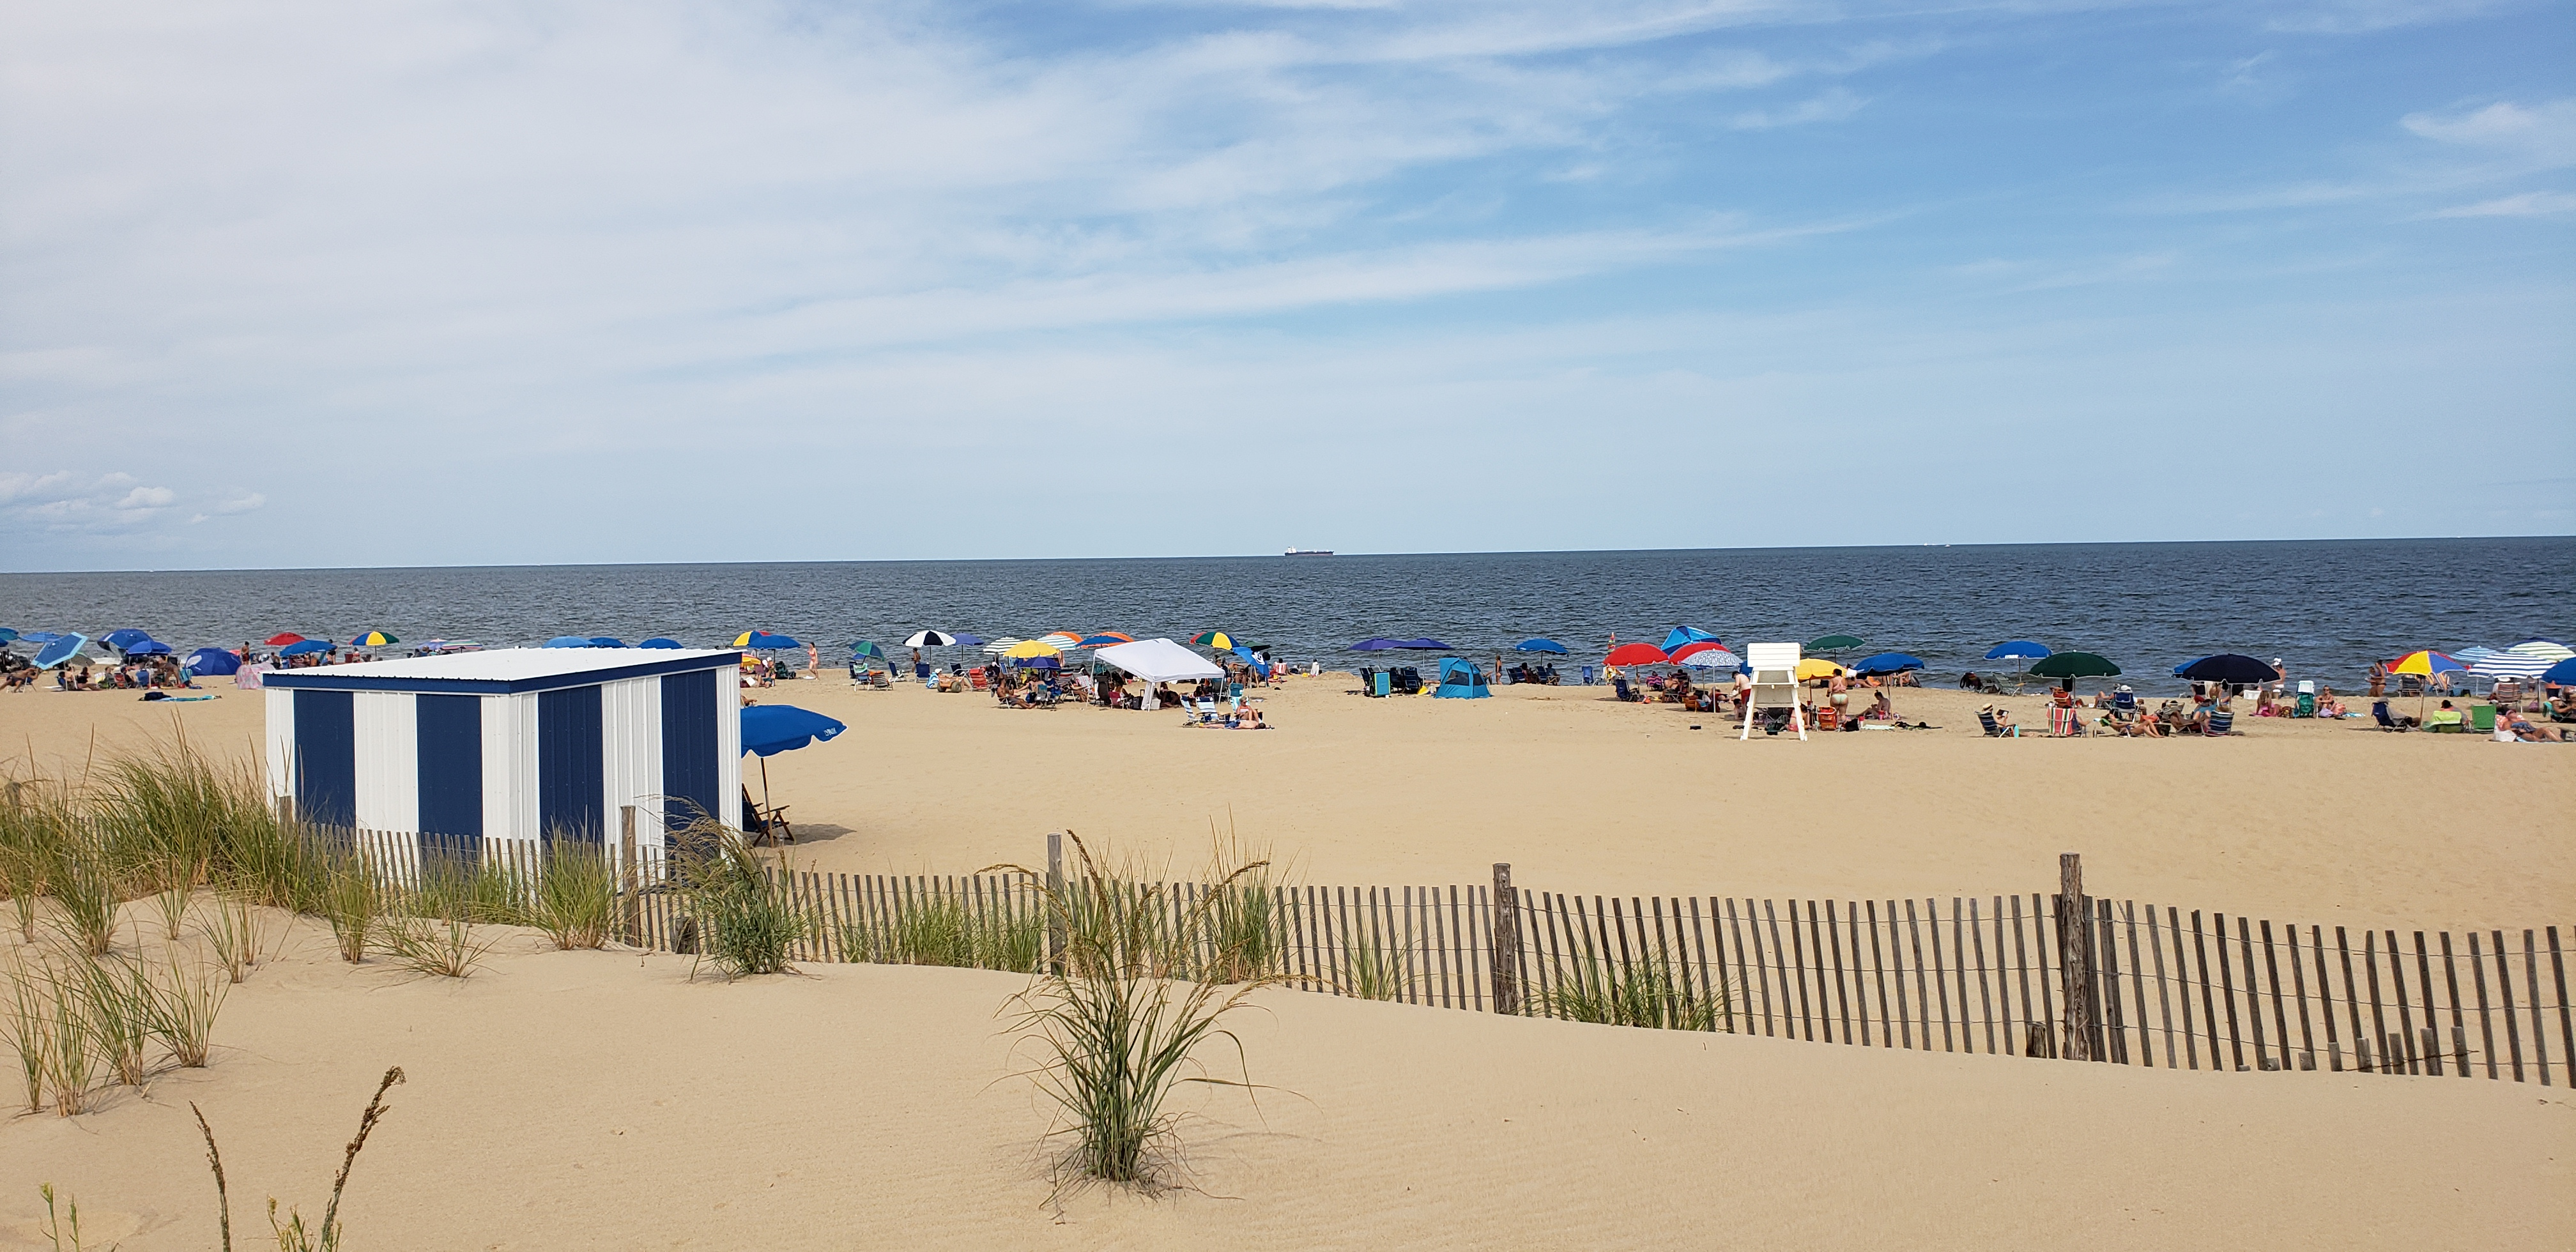 Rehoboth Beach - Things to Do in Rehoboth Beach